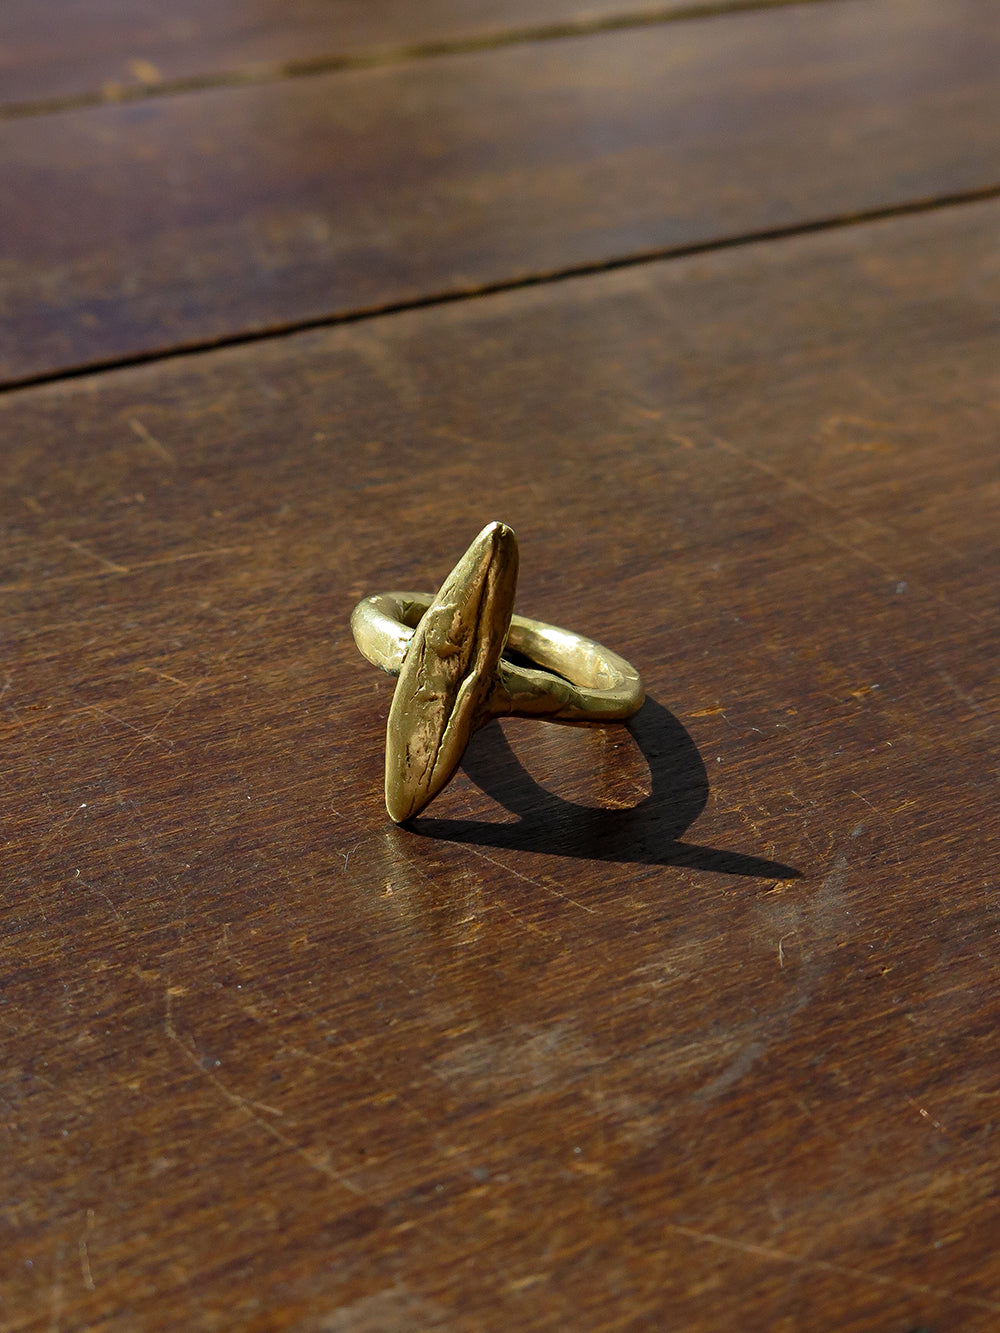 NN brass eclipse ring